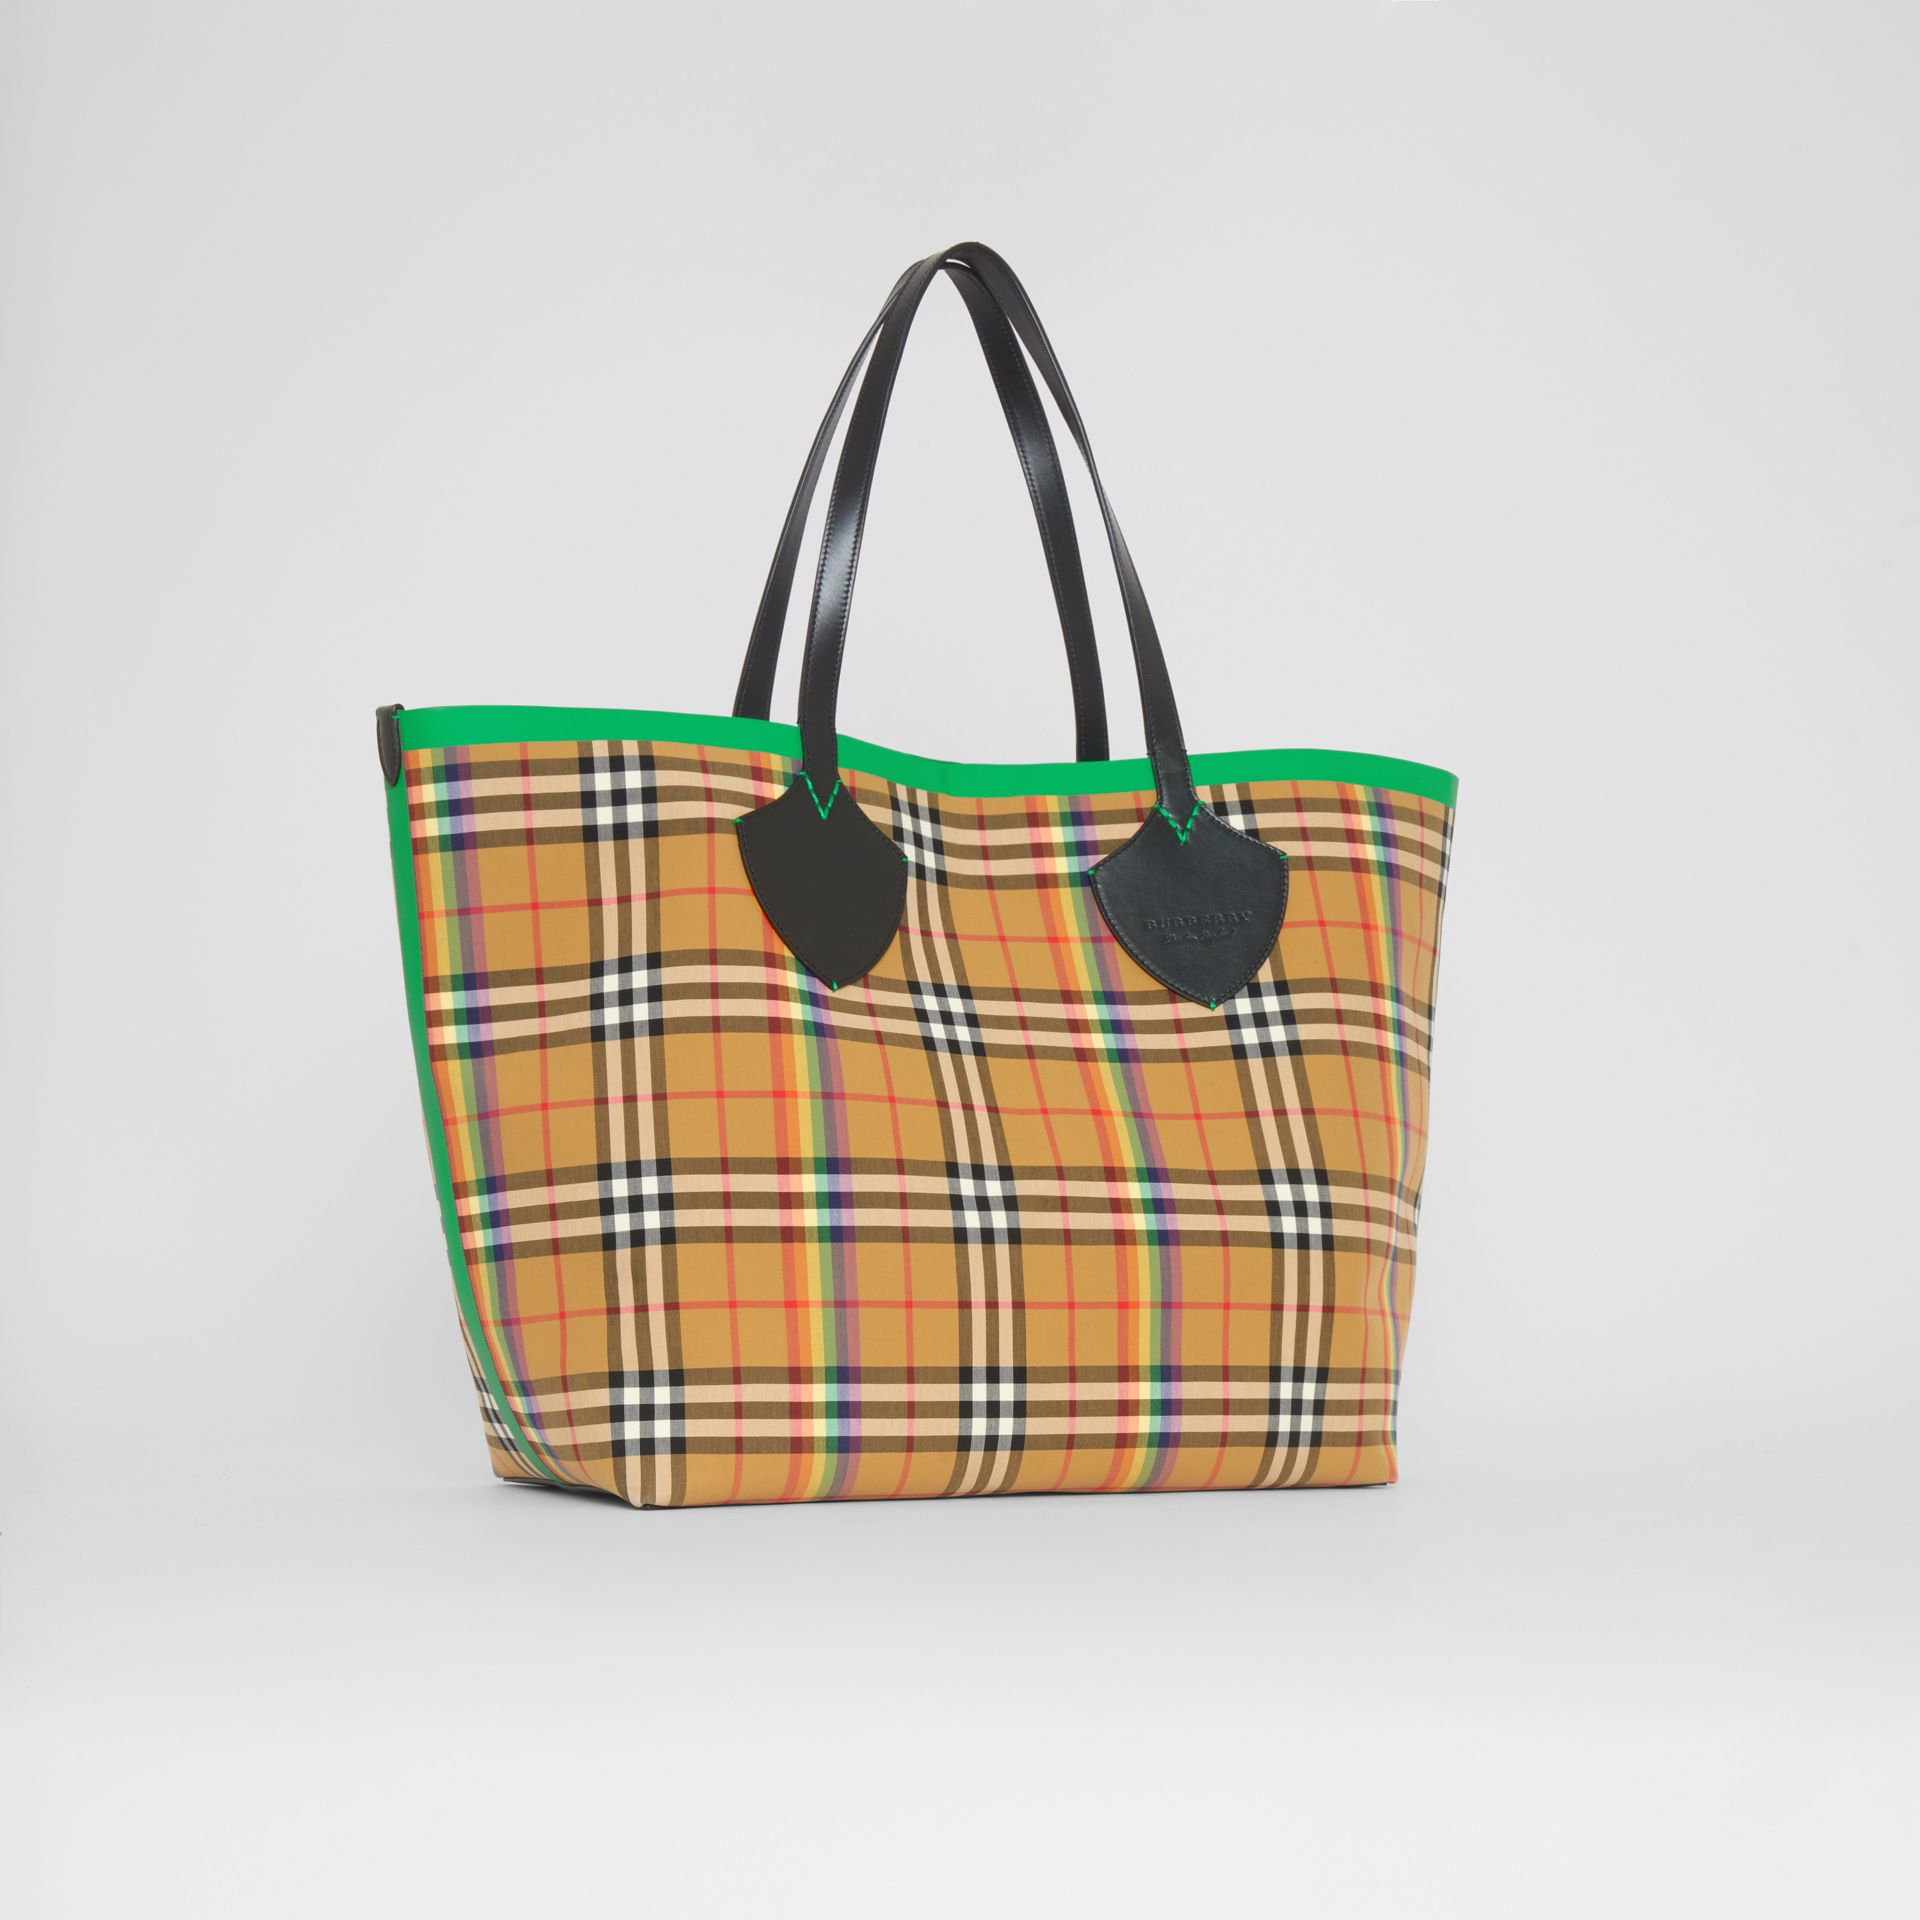 Sac tote The Giant à motif Rainbow Vintage check (Jaune Antique) | Burberry Canada - photo de la galerie 6